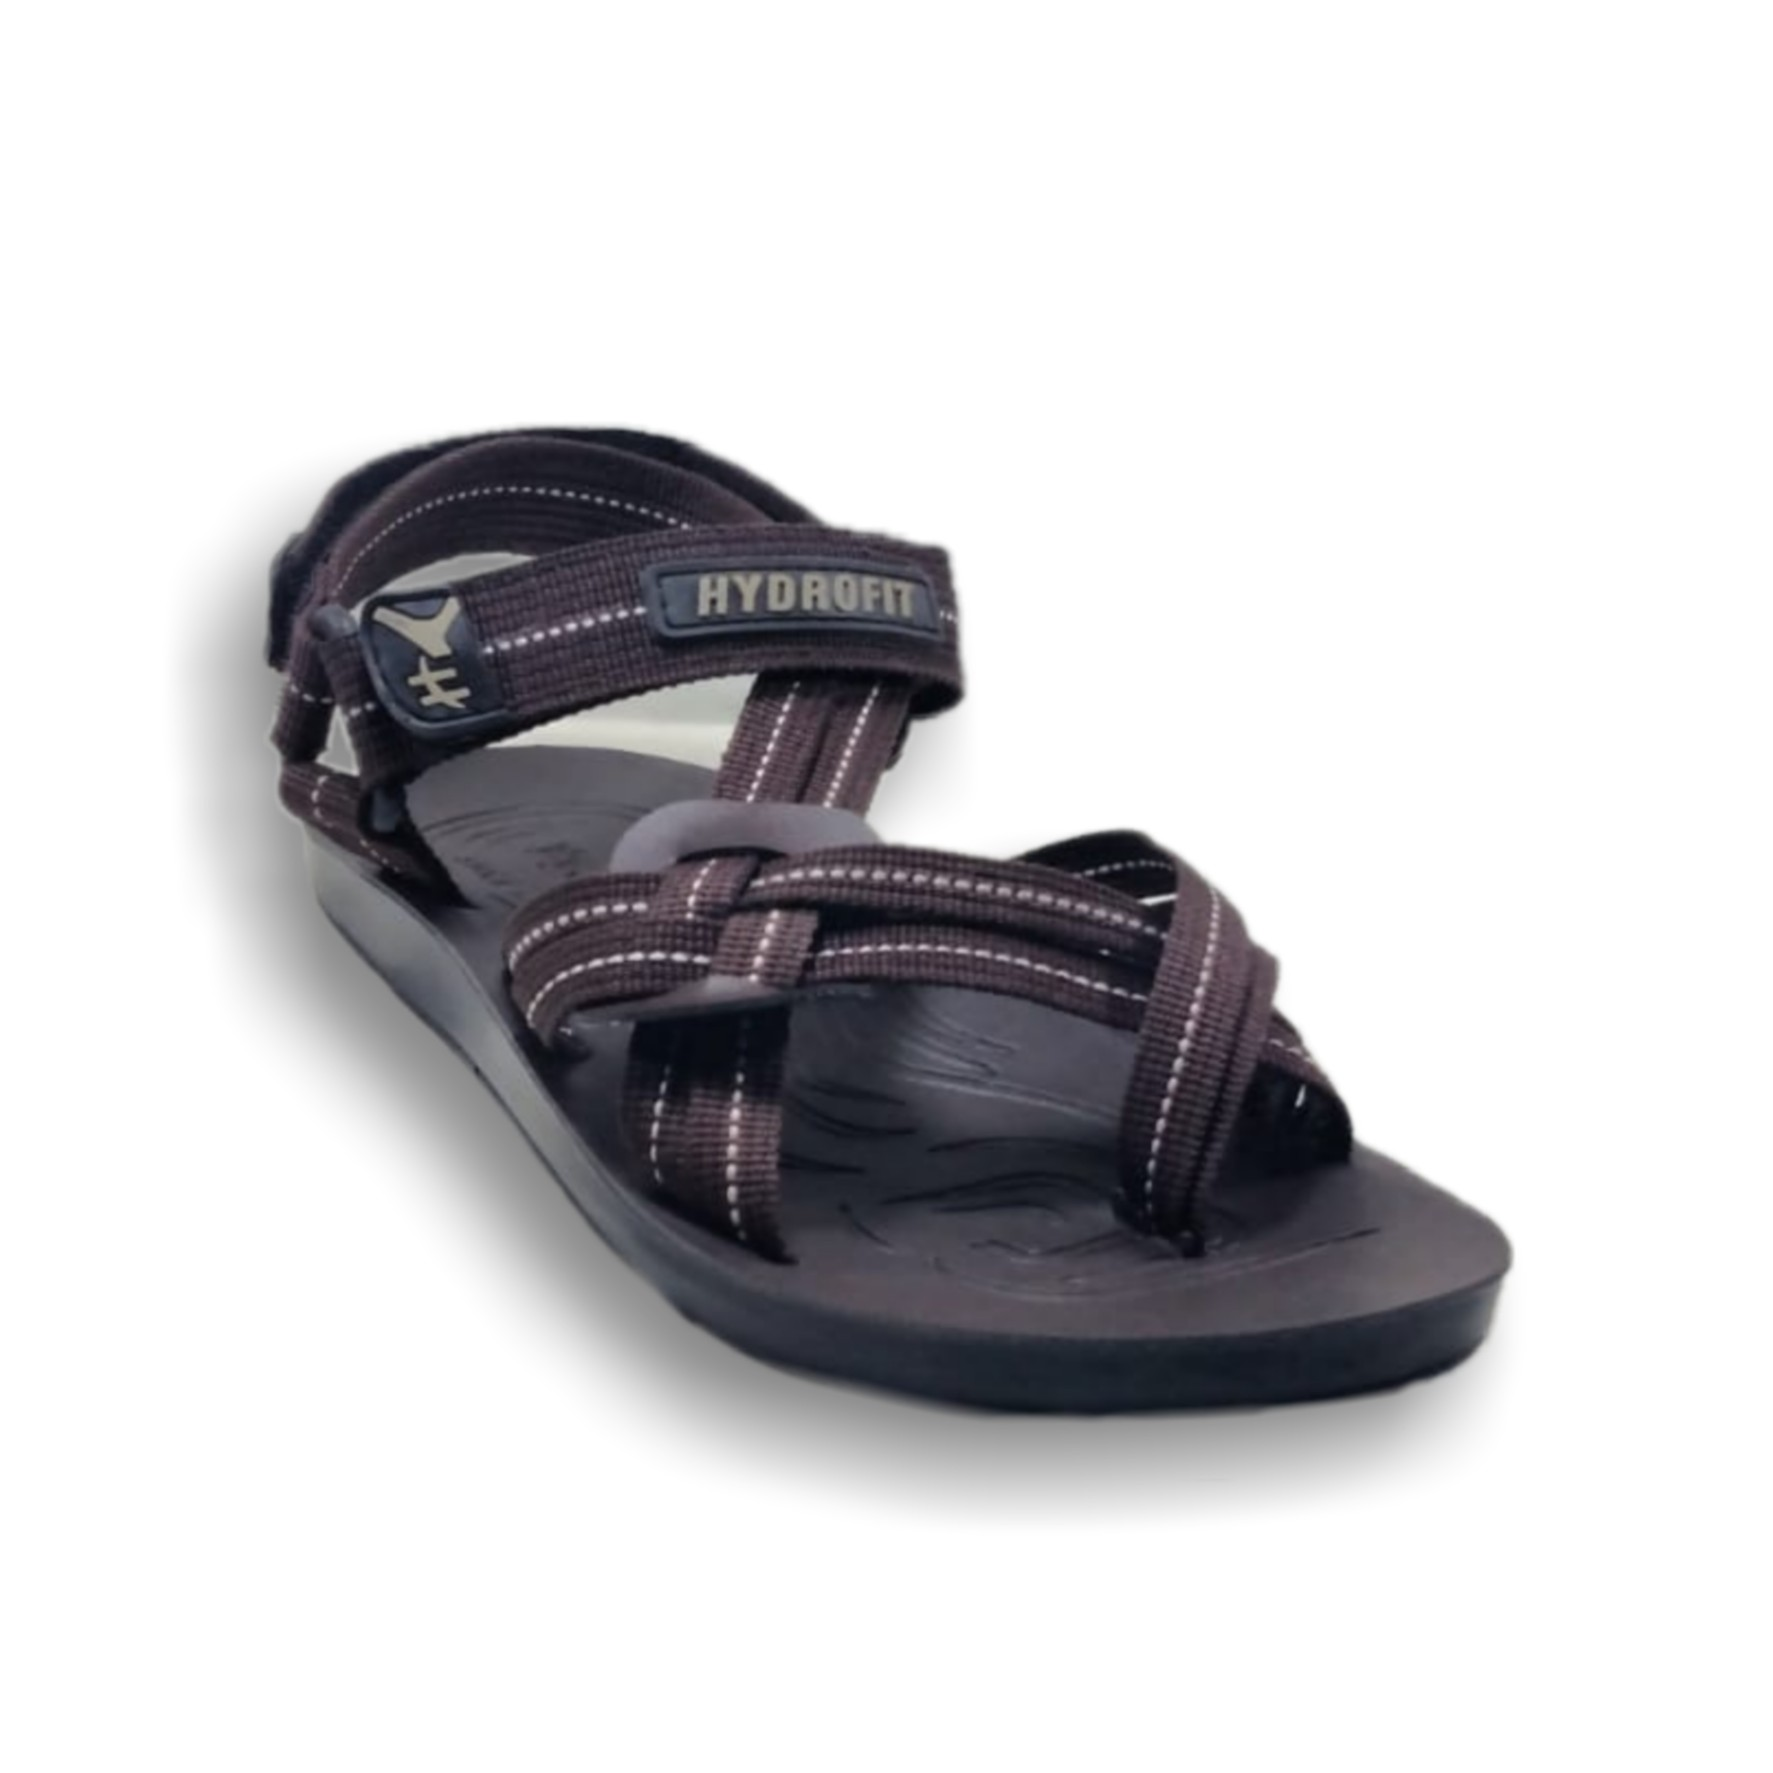 (MK) PU Washable Sandal - Blue and Brown Colour for Men